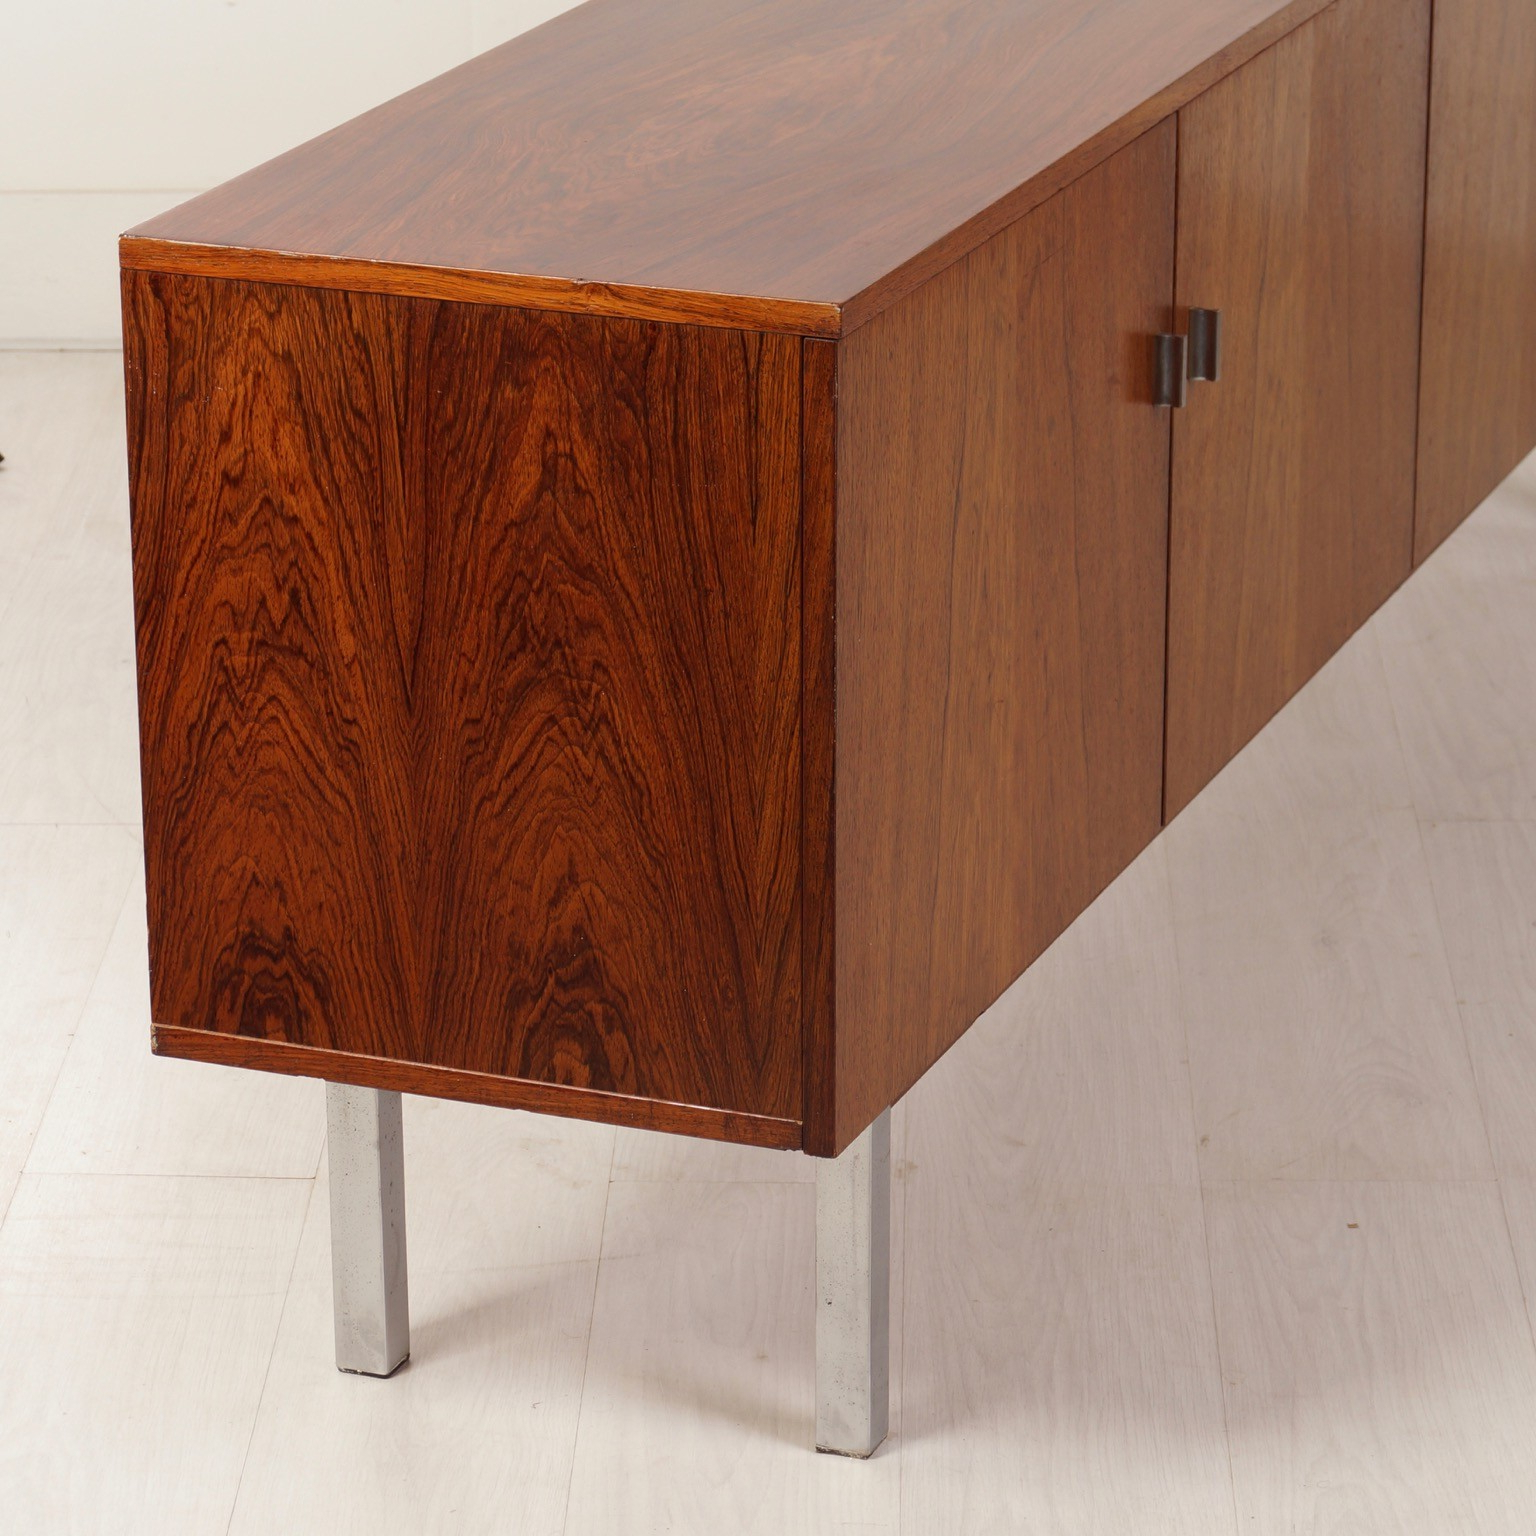 Vintage Sideboard Made Of Rosewood, 1960S – Ztijl Design With 2018 Vintage Brown Textured Sideboards (View 18 of 20)